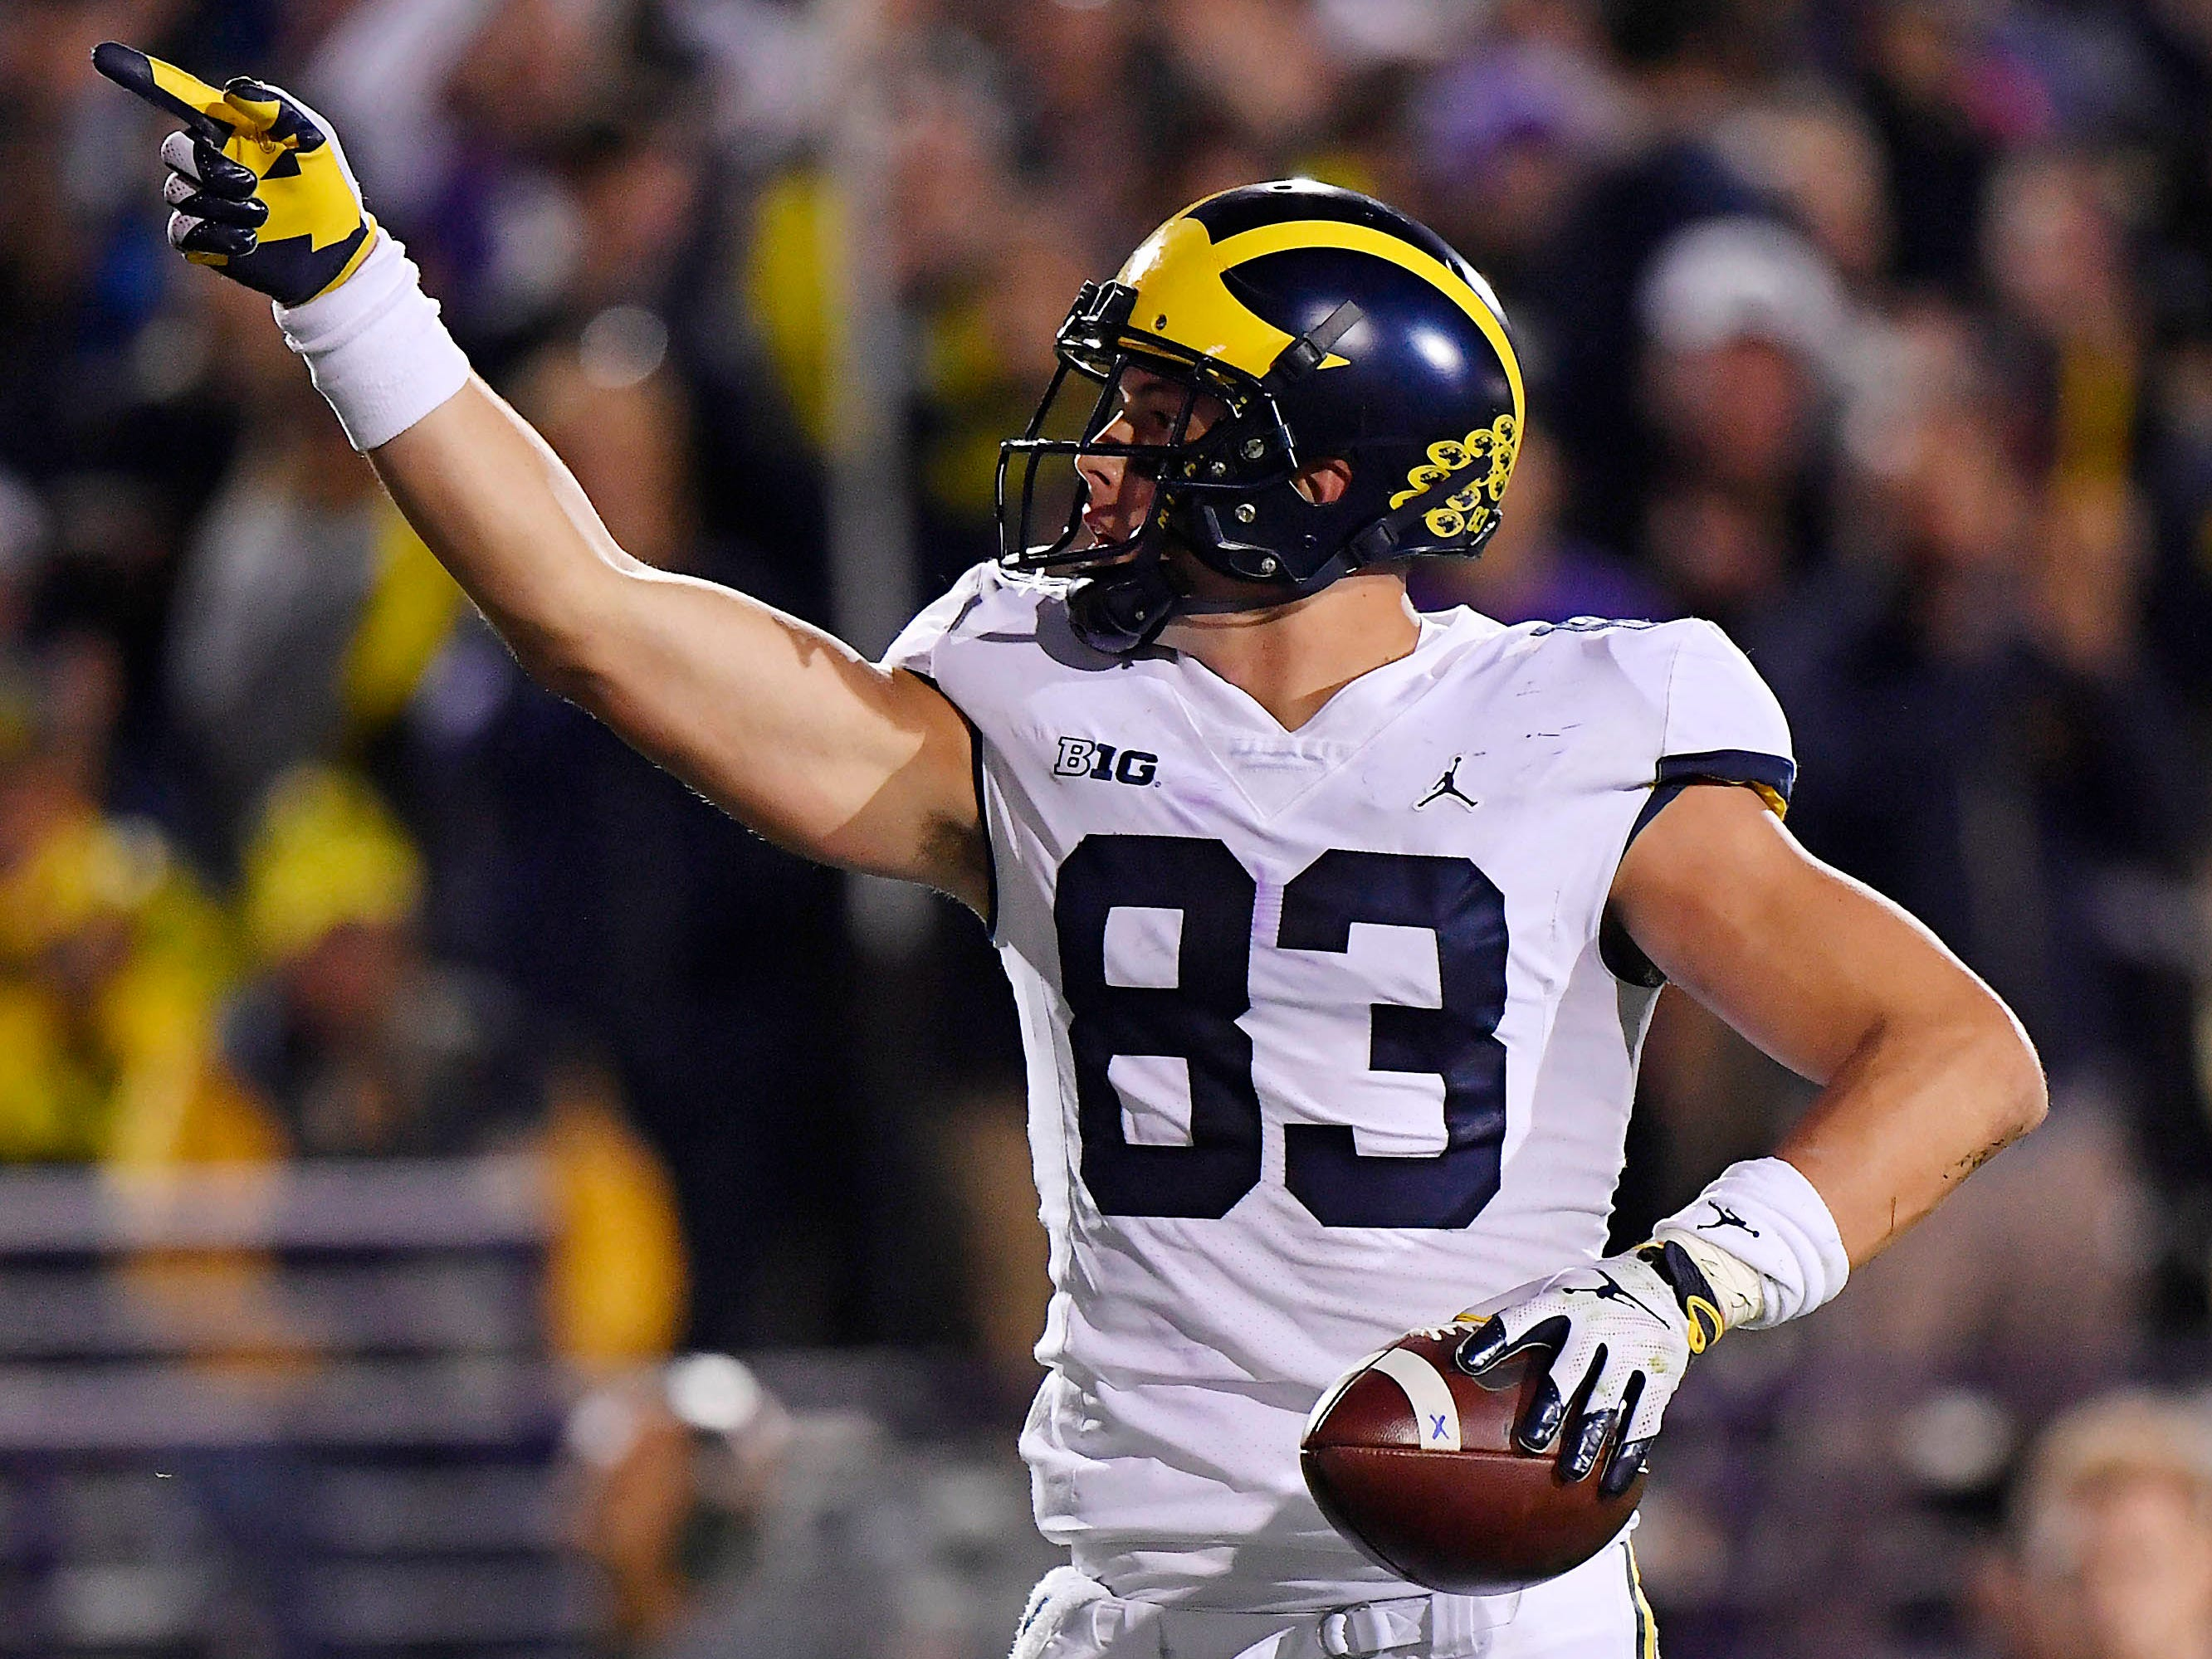 Zach Gentry, TE, Michigan